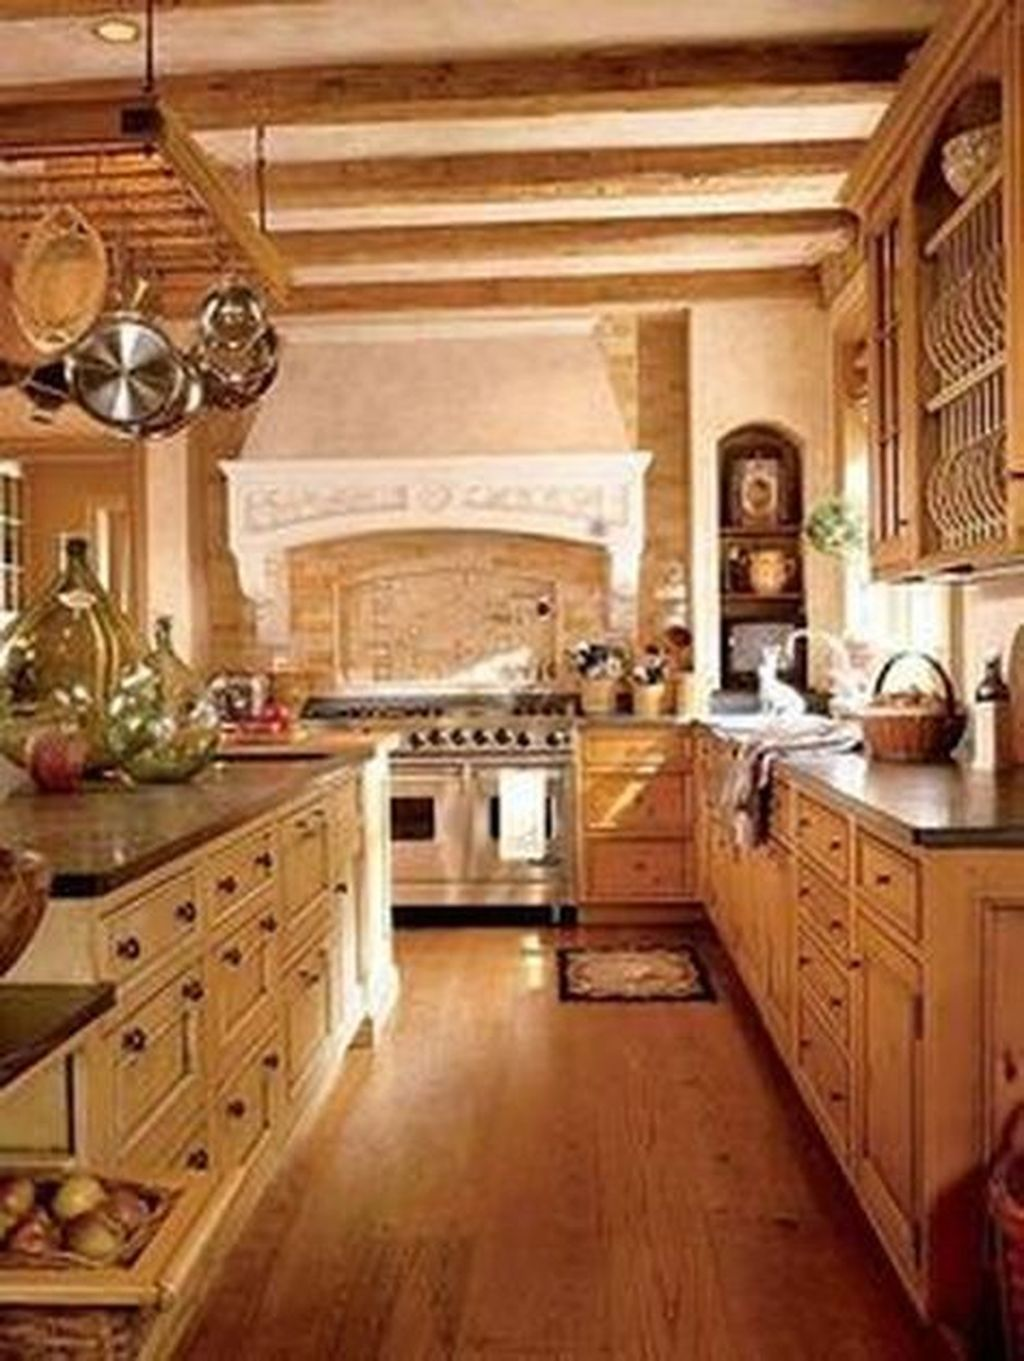 Charming Italian Style For Your Kitchen Design Ideas In 2020 Italian Style Kitchens Italian Kitchen Decor Italian Kitchen Design